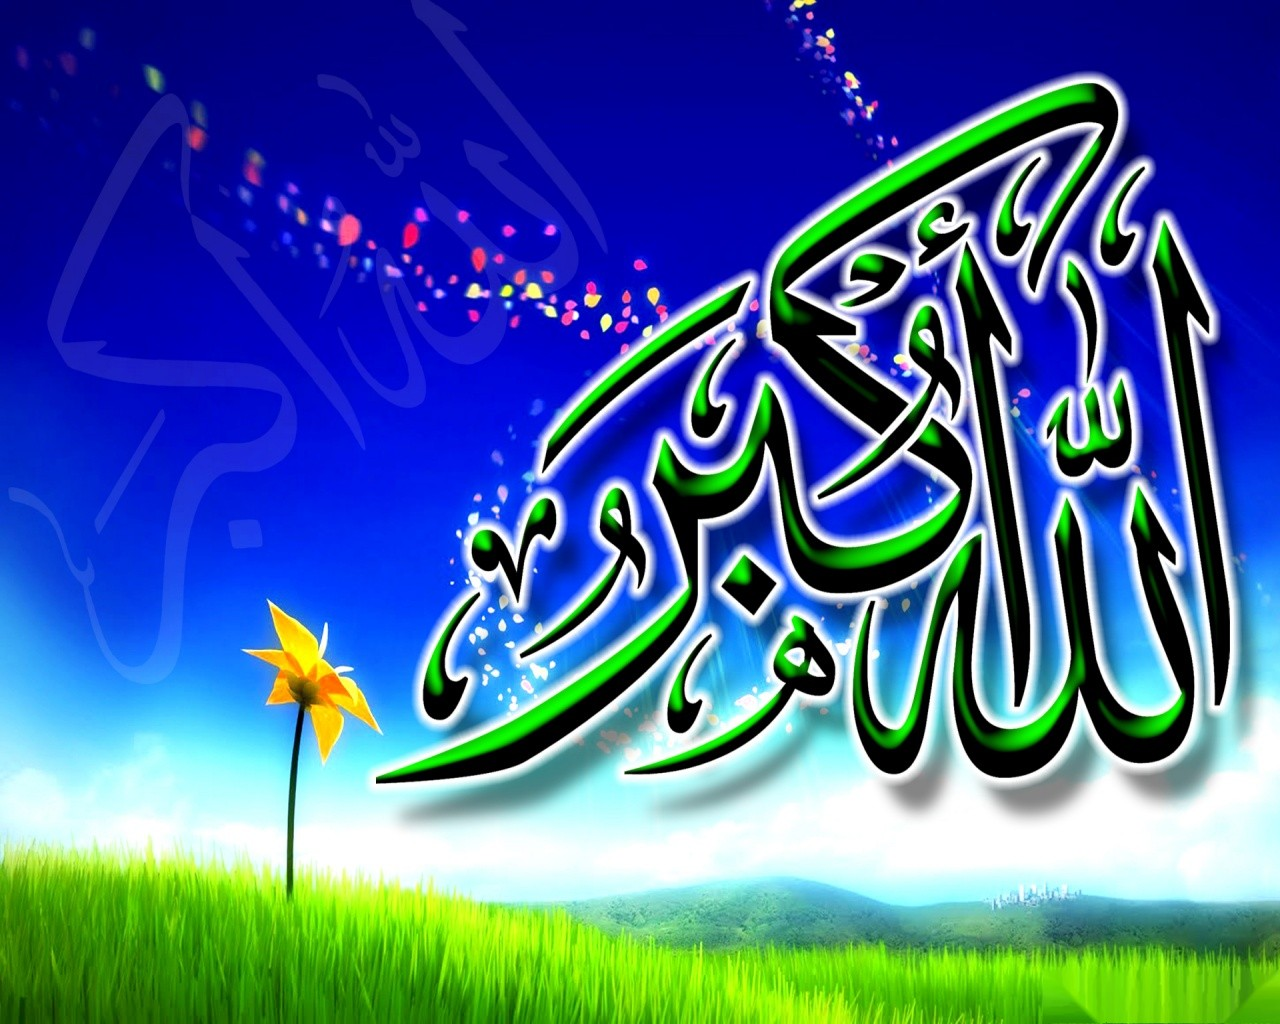 Islamic High Quality Wallpapers: New HD Natural Allah O Akbar Wallpaper